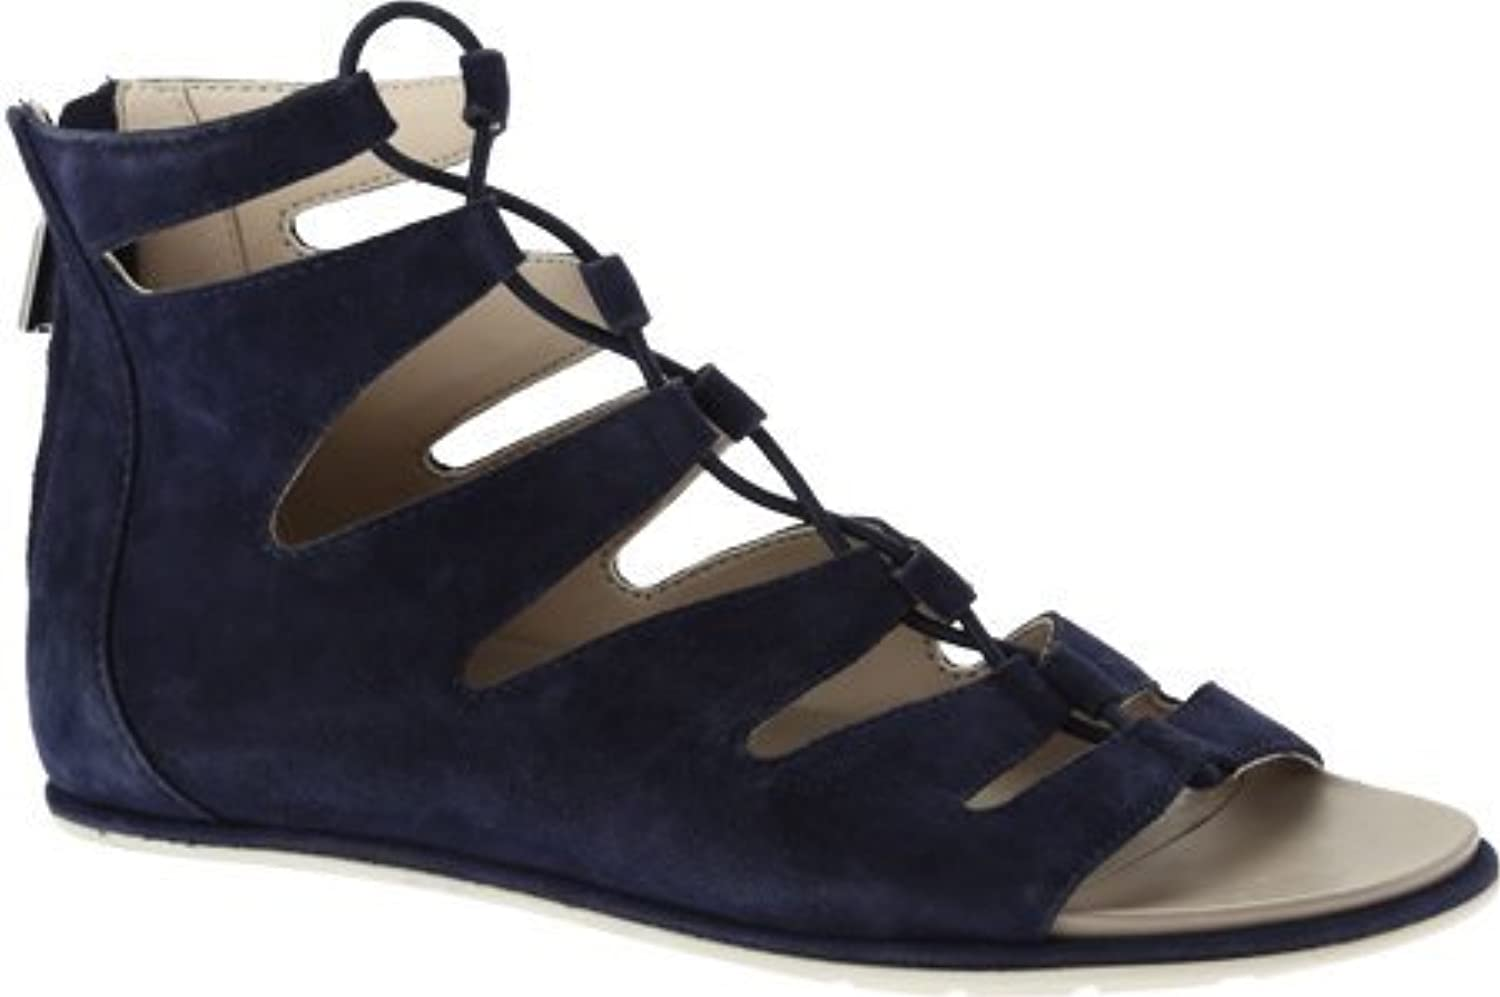 Kenneth Cole New York Women's Ollie Sandal,Navy Suede,US 6 M